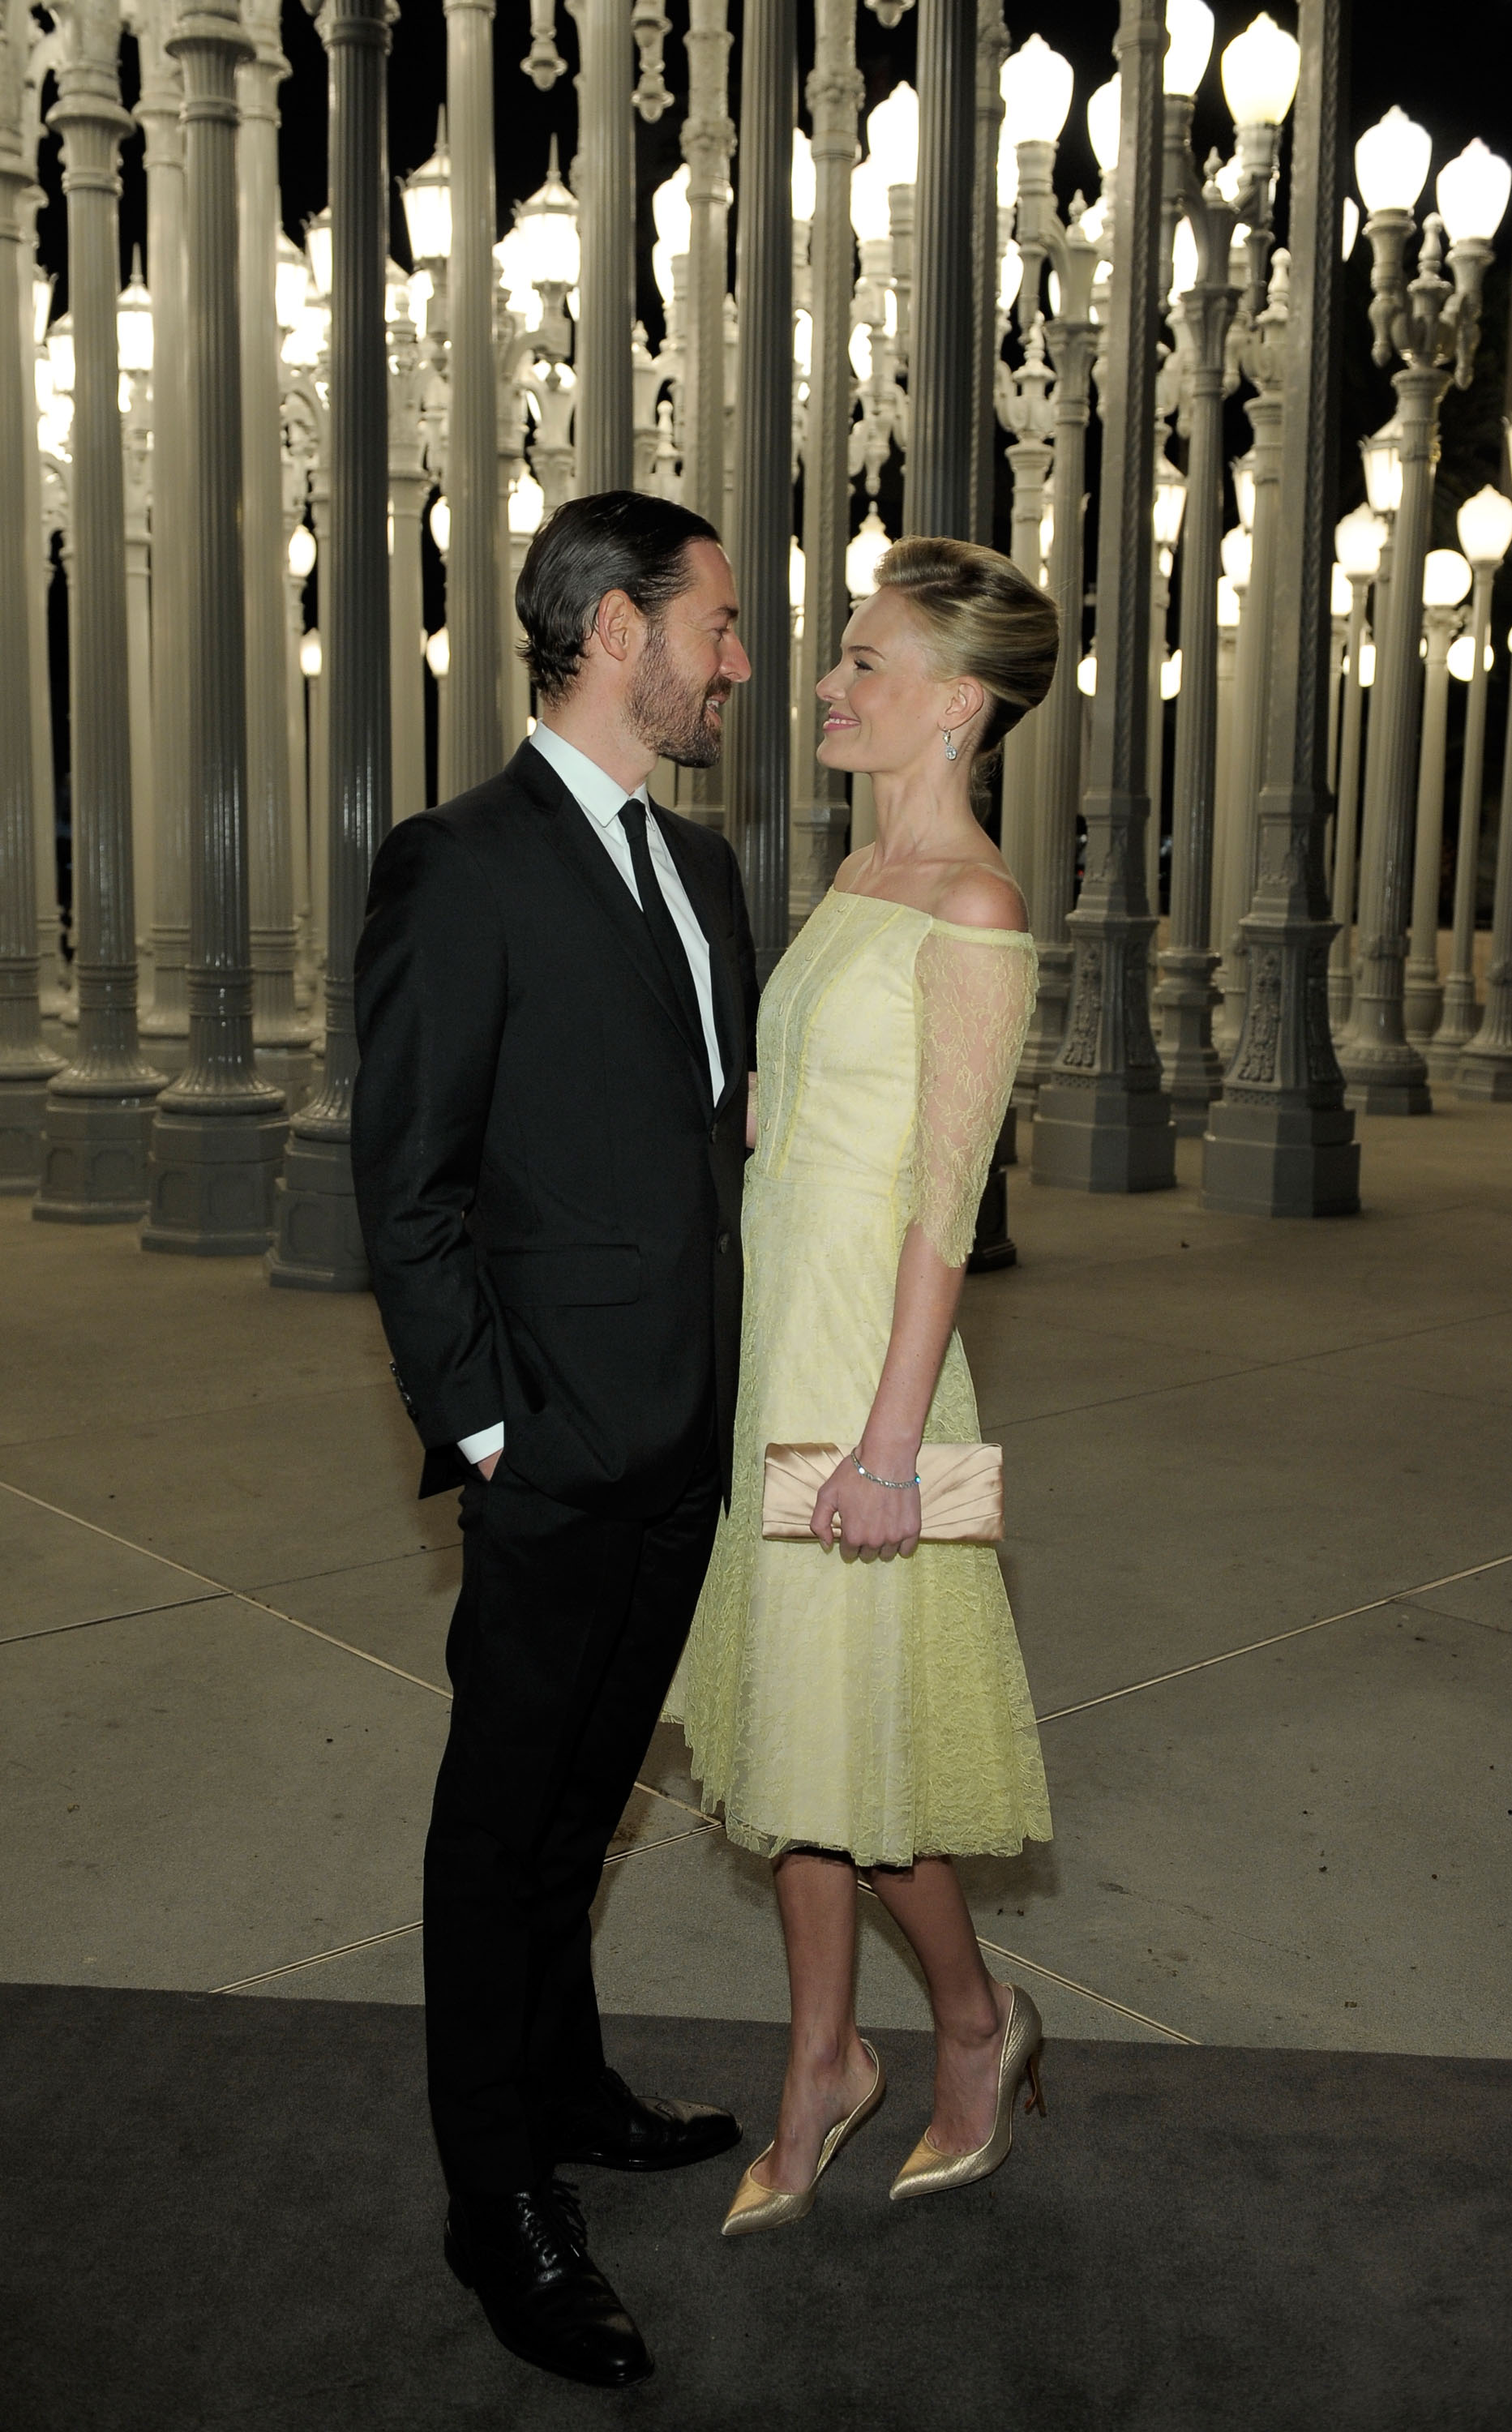 Kate Bosworth and boyfriend Michael Polish shared a look of love.